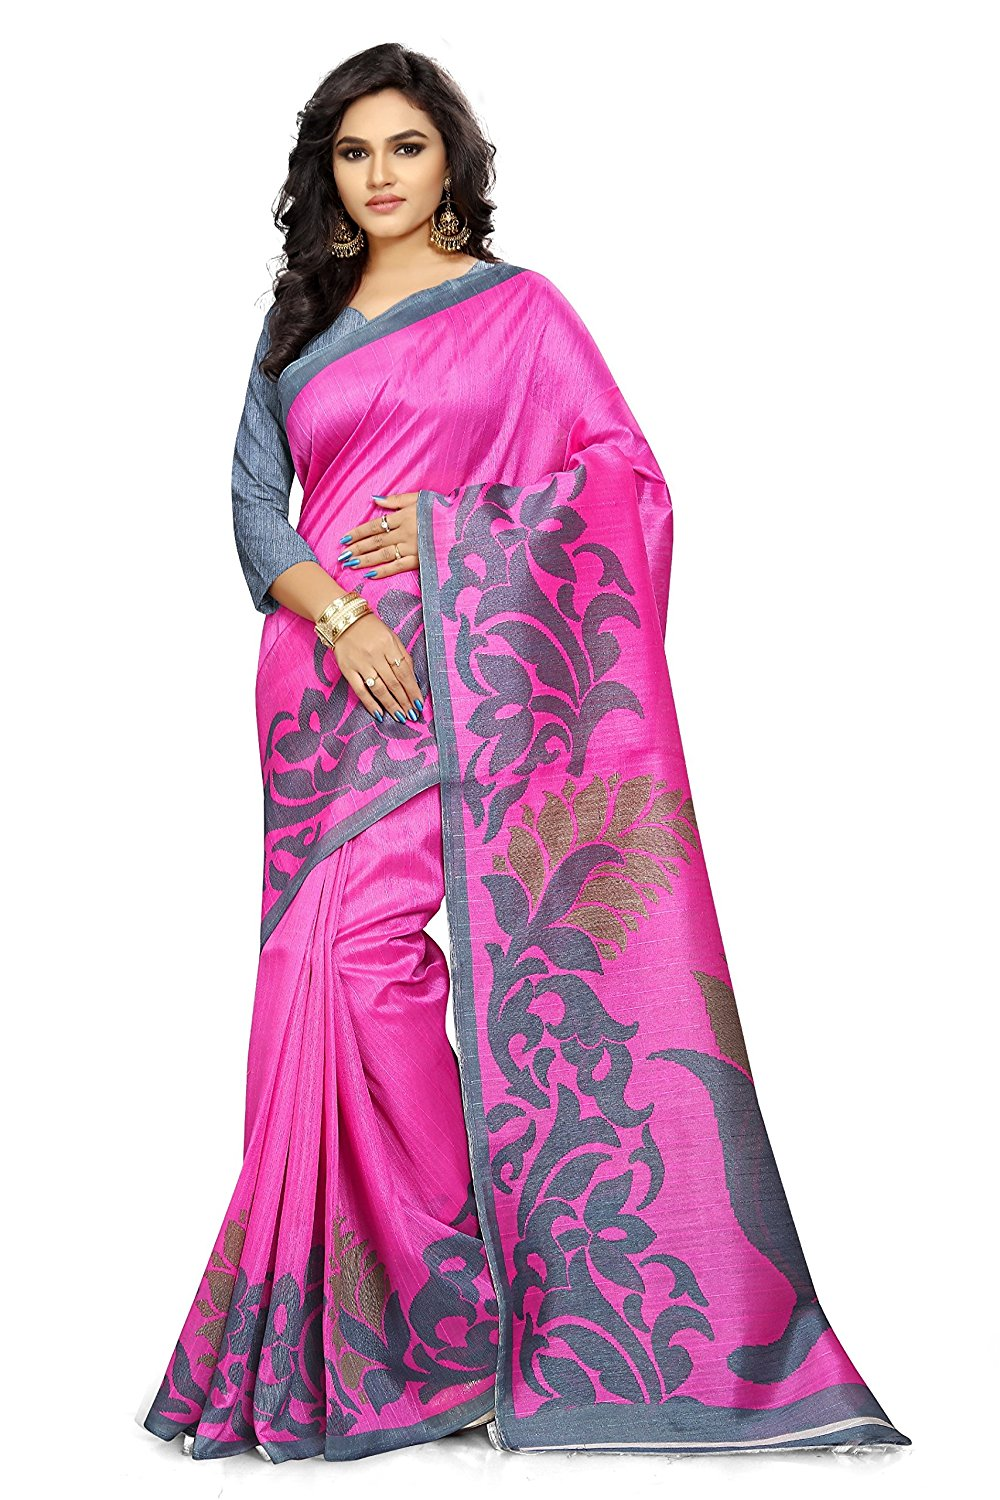 Ginigold Womens Cotton Saree With Blouse Piece